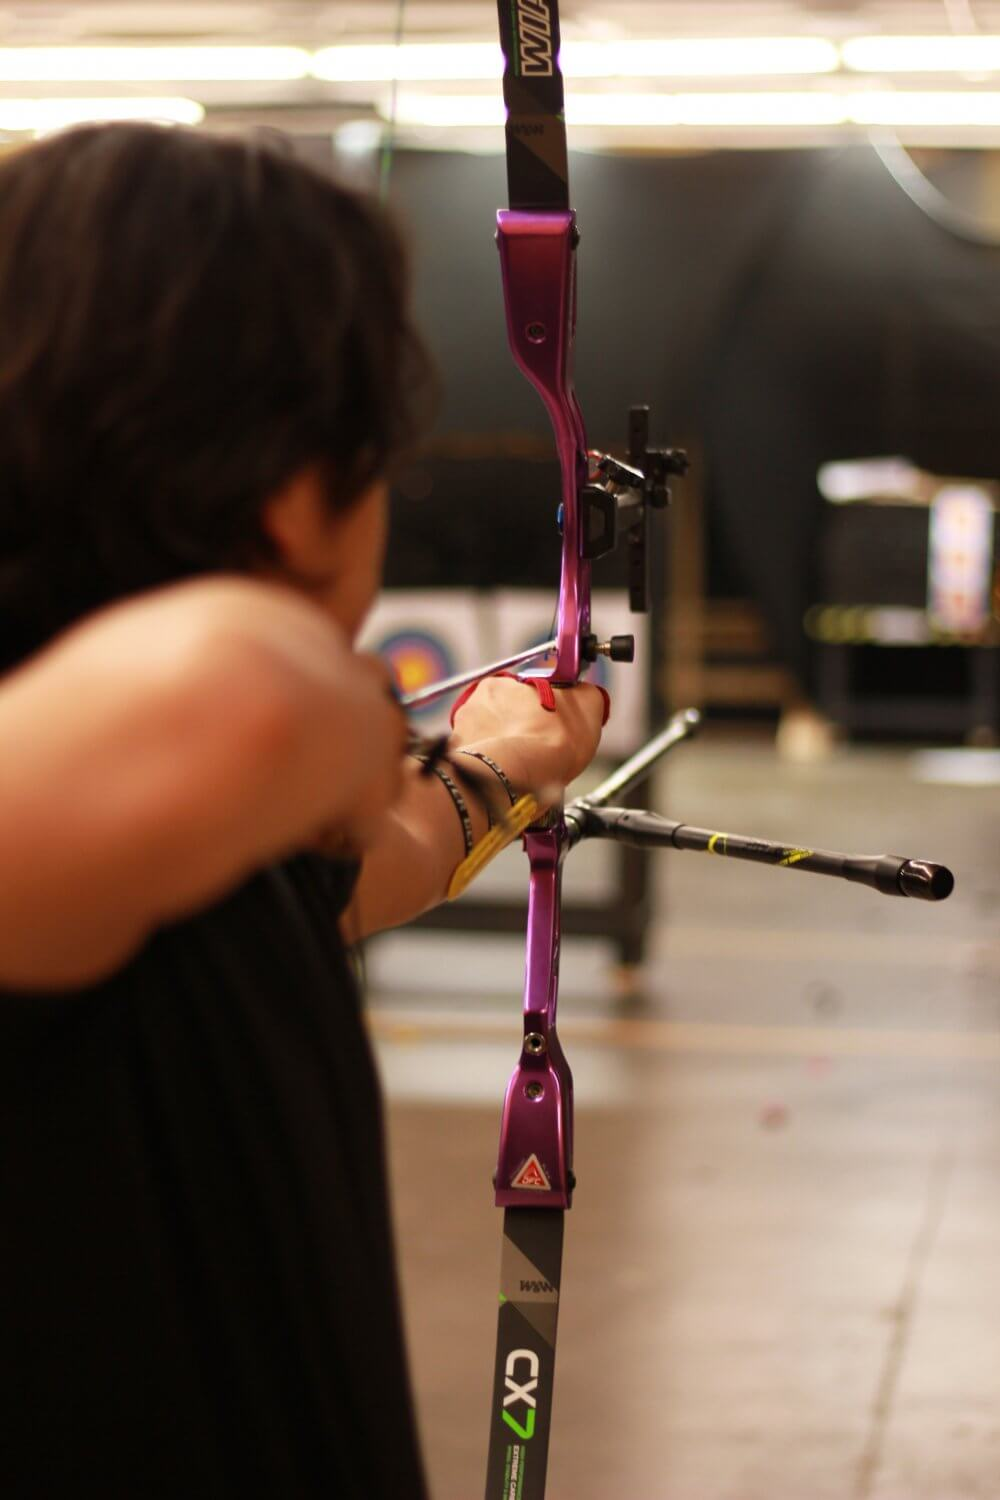 Man shooting archery compound bow, view from behind